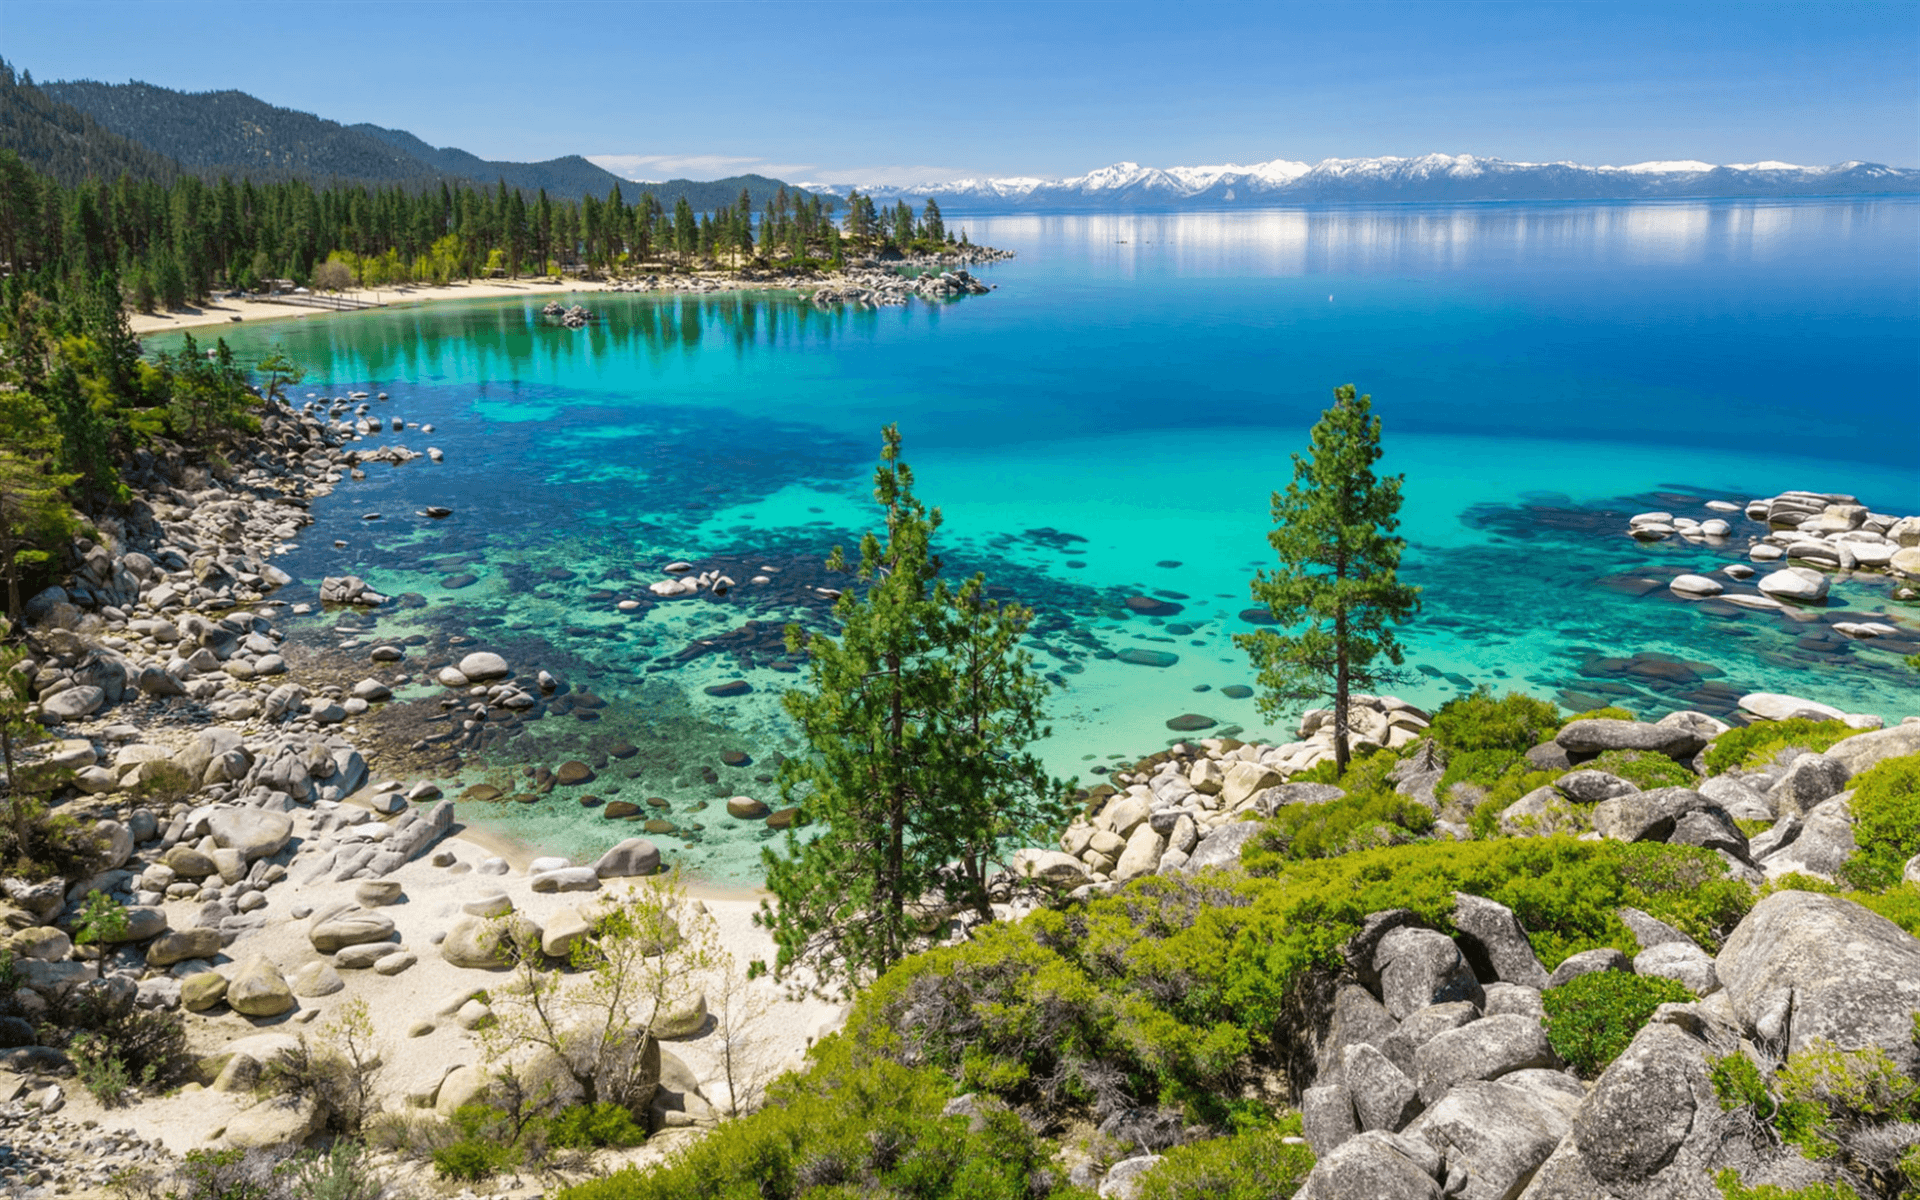 Download wallpapers Lake Tahoe, spring, sunny day, blue lake